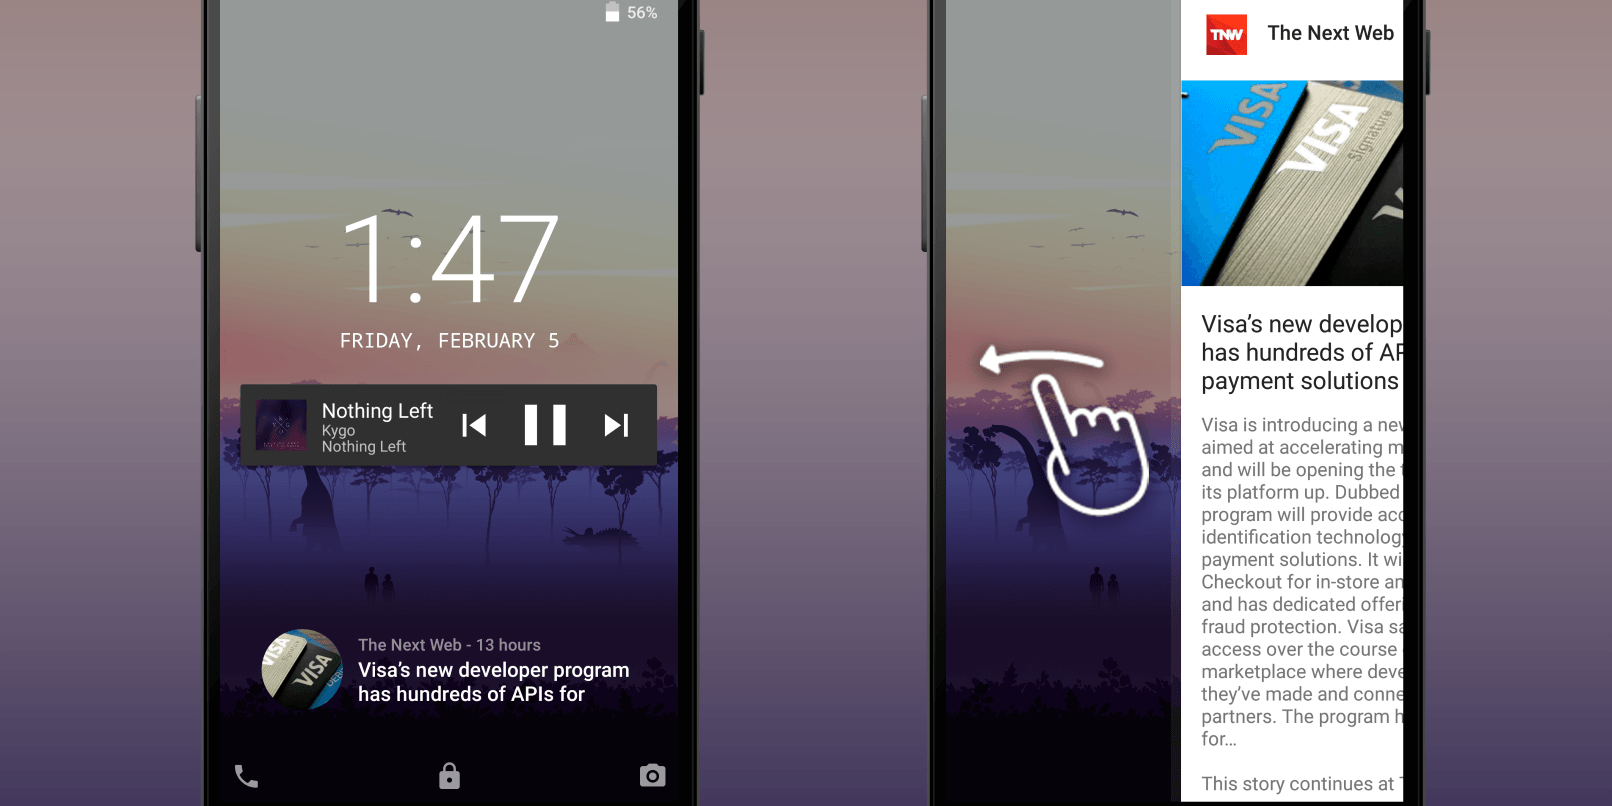 This Android app is a simple and useful way to get news on your lock screen